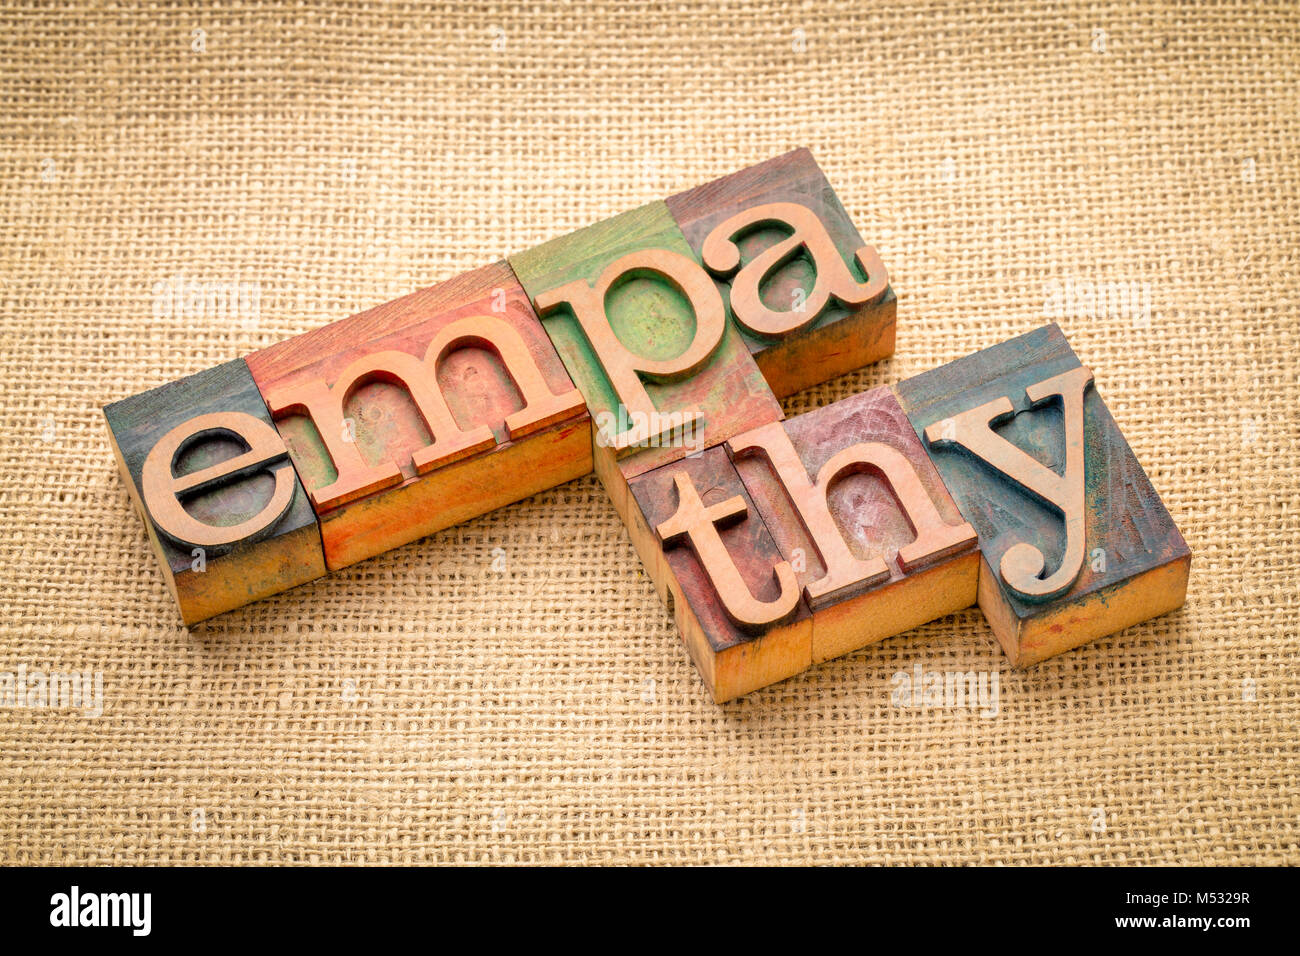 empathy word abstract in letterpress wood type against burlap canvas - Stock Image